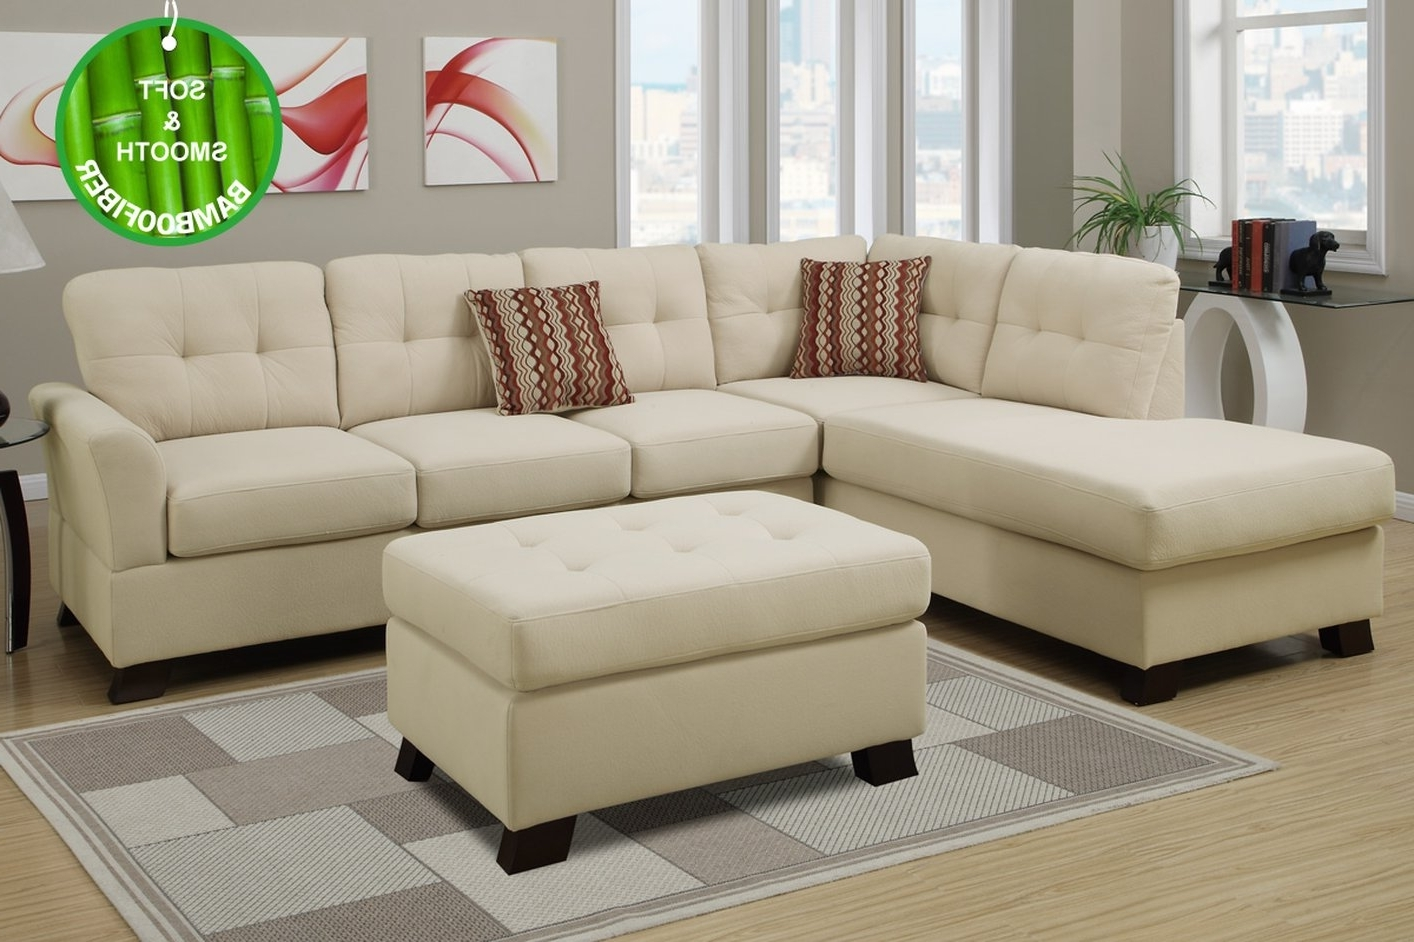 2017 Beige Sectionals With Chaise Within Sectional Sofa Design: Amazing Beige Sectional Sofas Beige Leather (View 2 of 15)